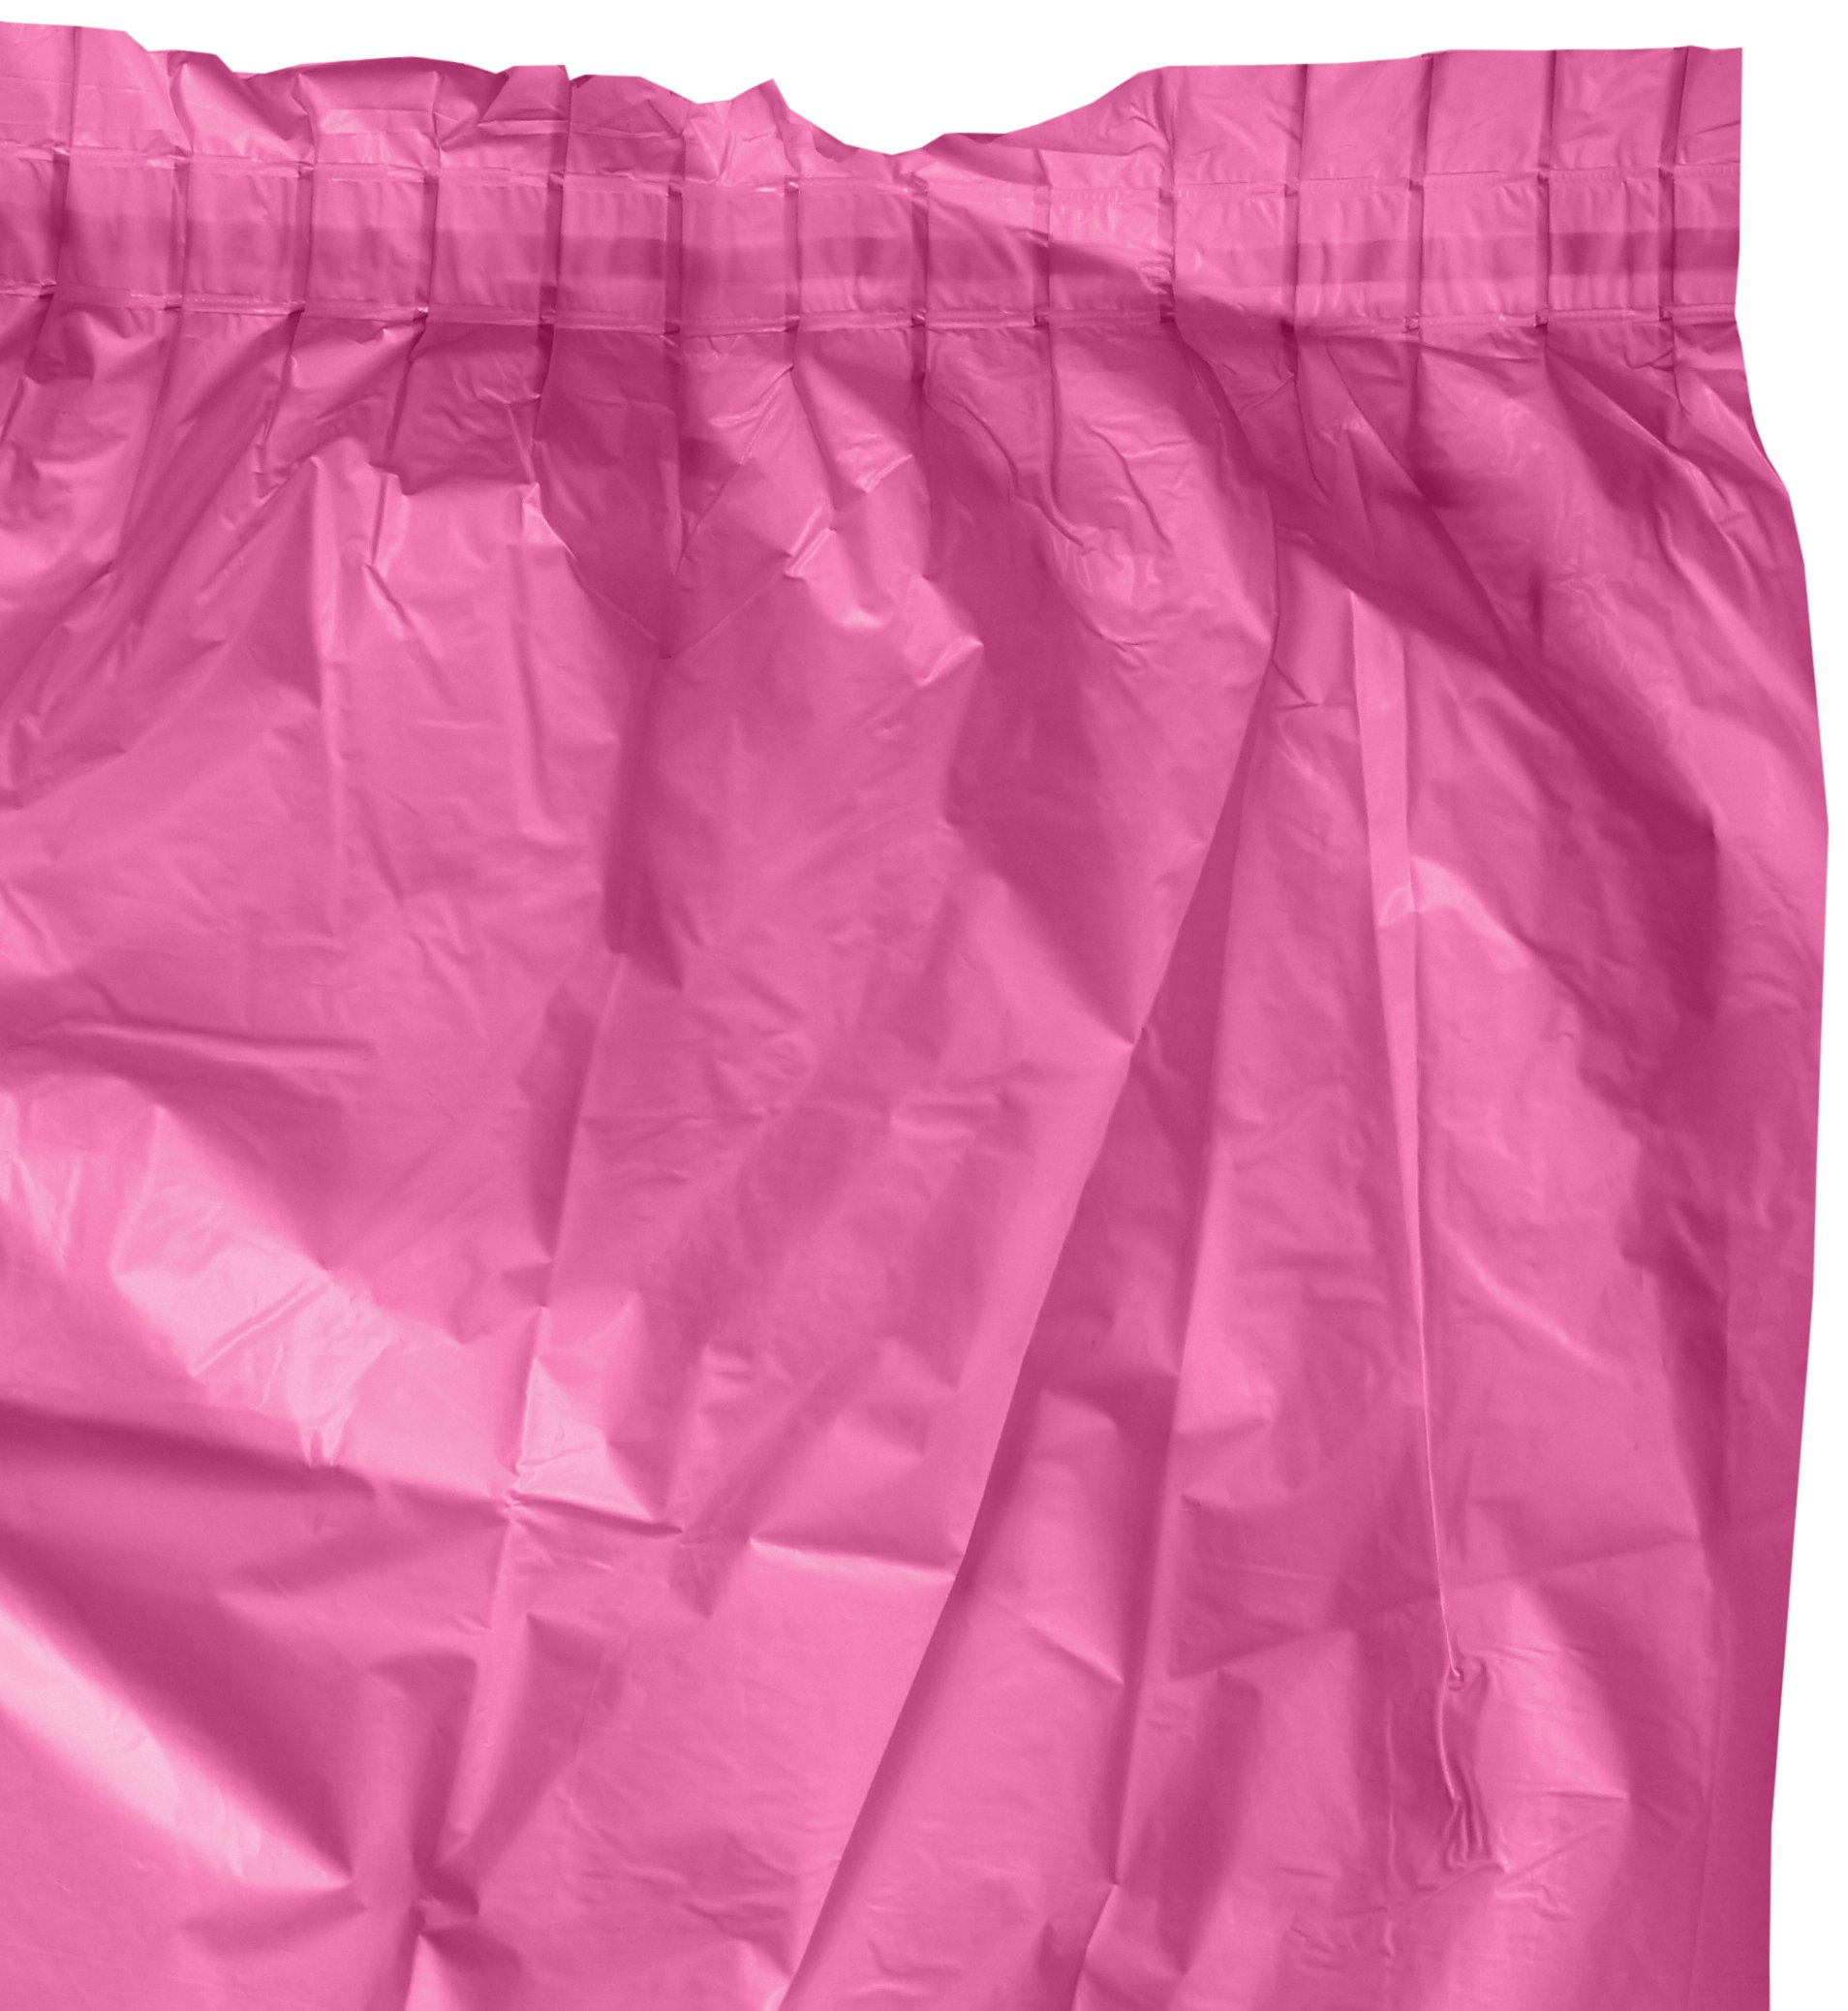 Bright Pink Plastic Table Skirt | Party Tableware | 6 Ct.